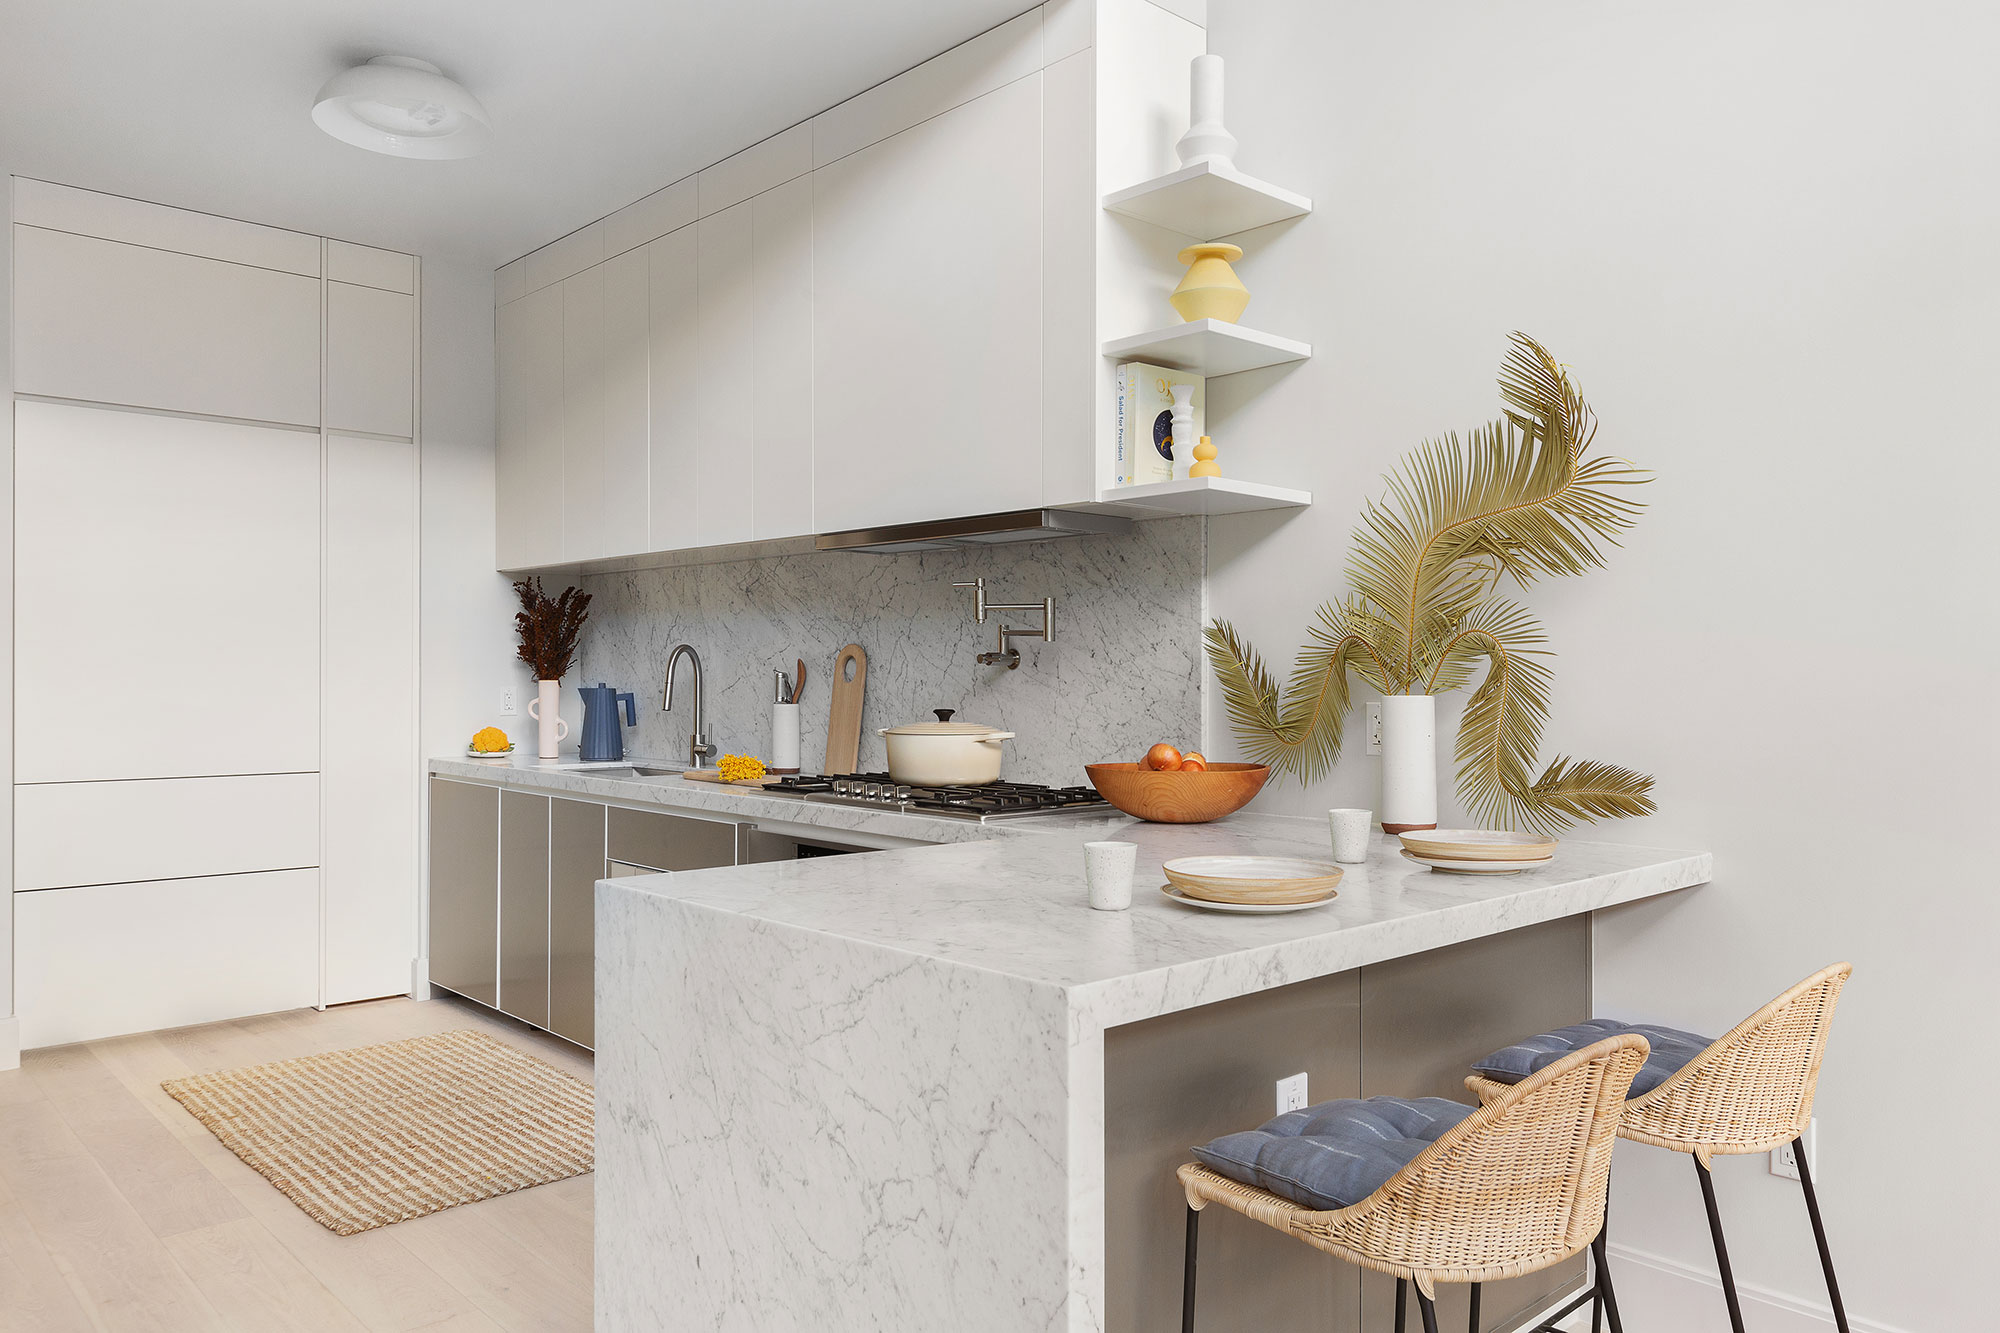 Custom White and Metallic Duo Tone Contemporary Kitchen with Marble Waterfall Island Interior Design by Meshberg Group